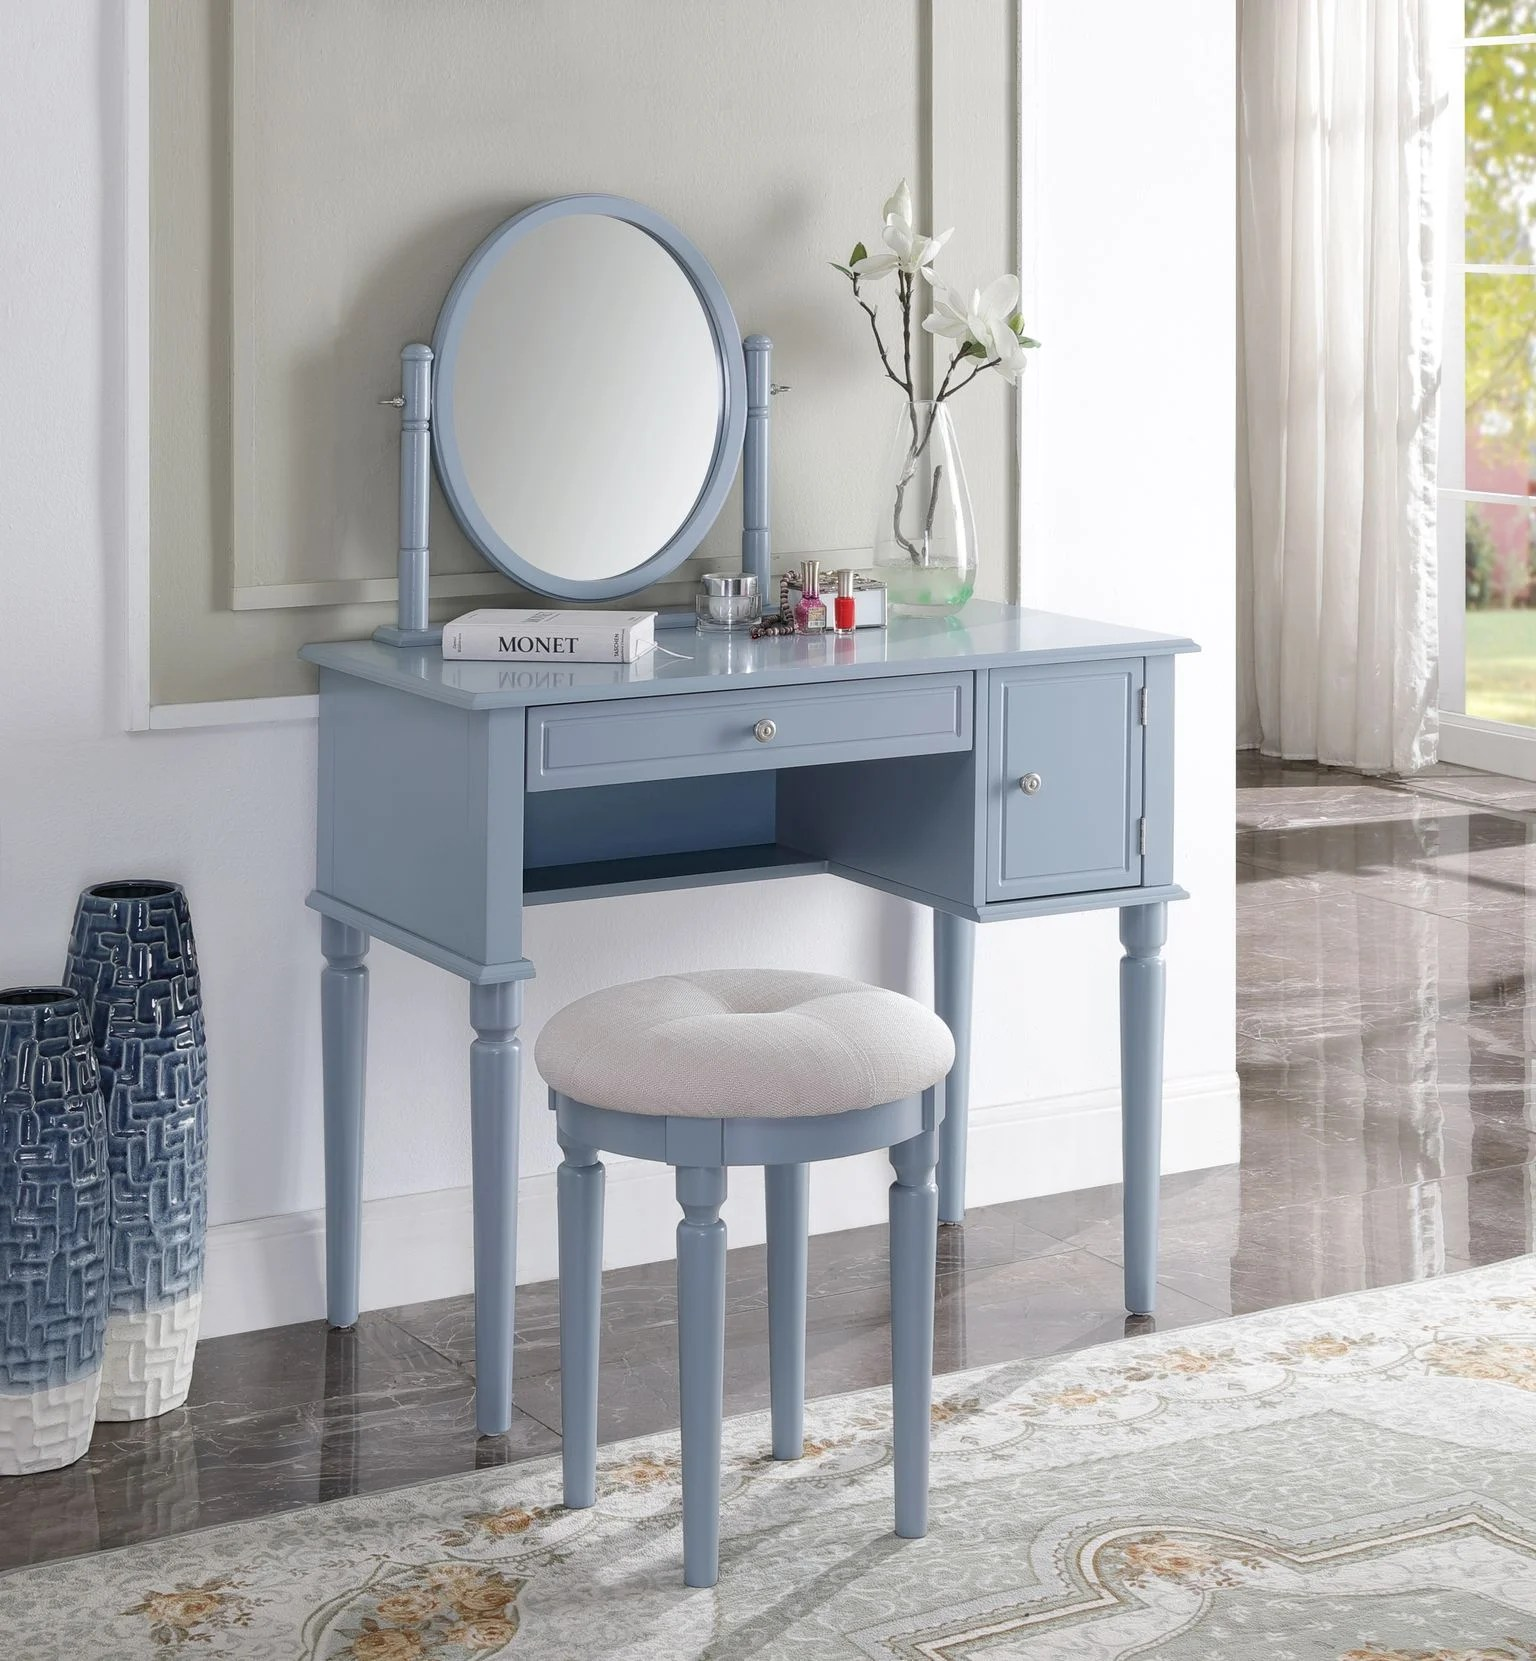 transitional style mirror table and stool vanity set with in cream fabric and gray finish